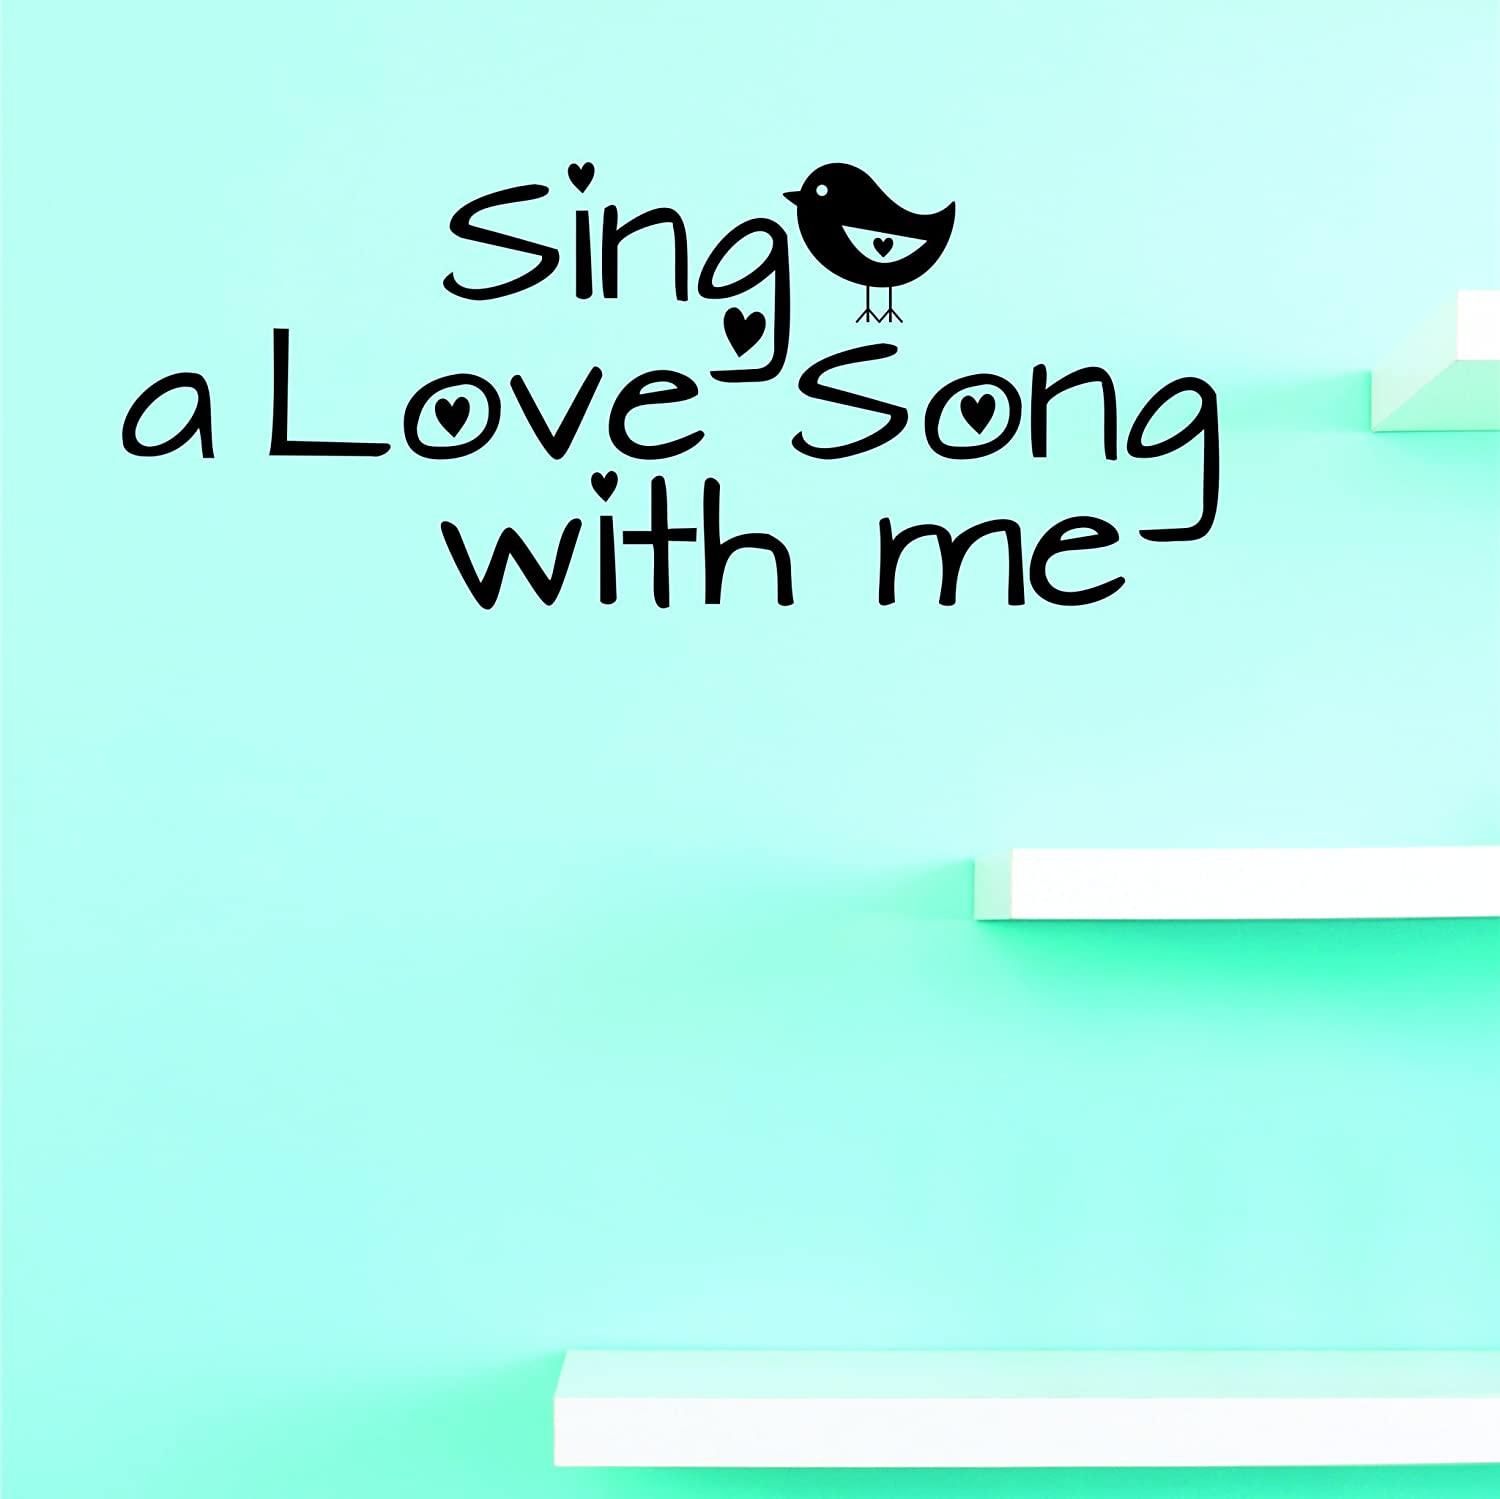 Wall Art Size Black 20 x 40 Design with Vinyl JER 2341 3 Hot New Decals Sing a love song with me 20 Inches x 40 Inches Color